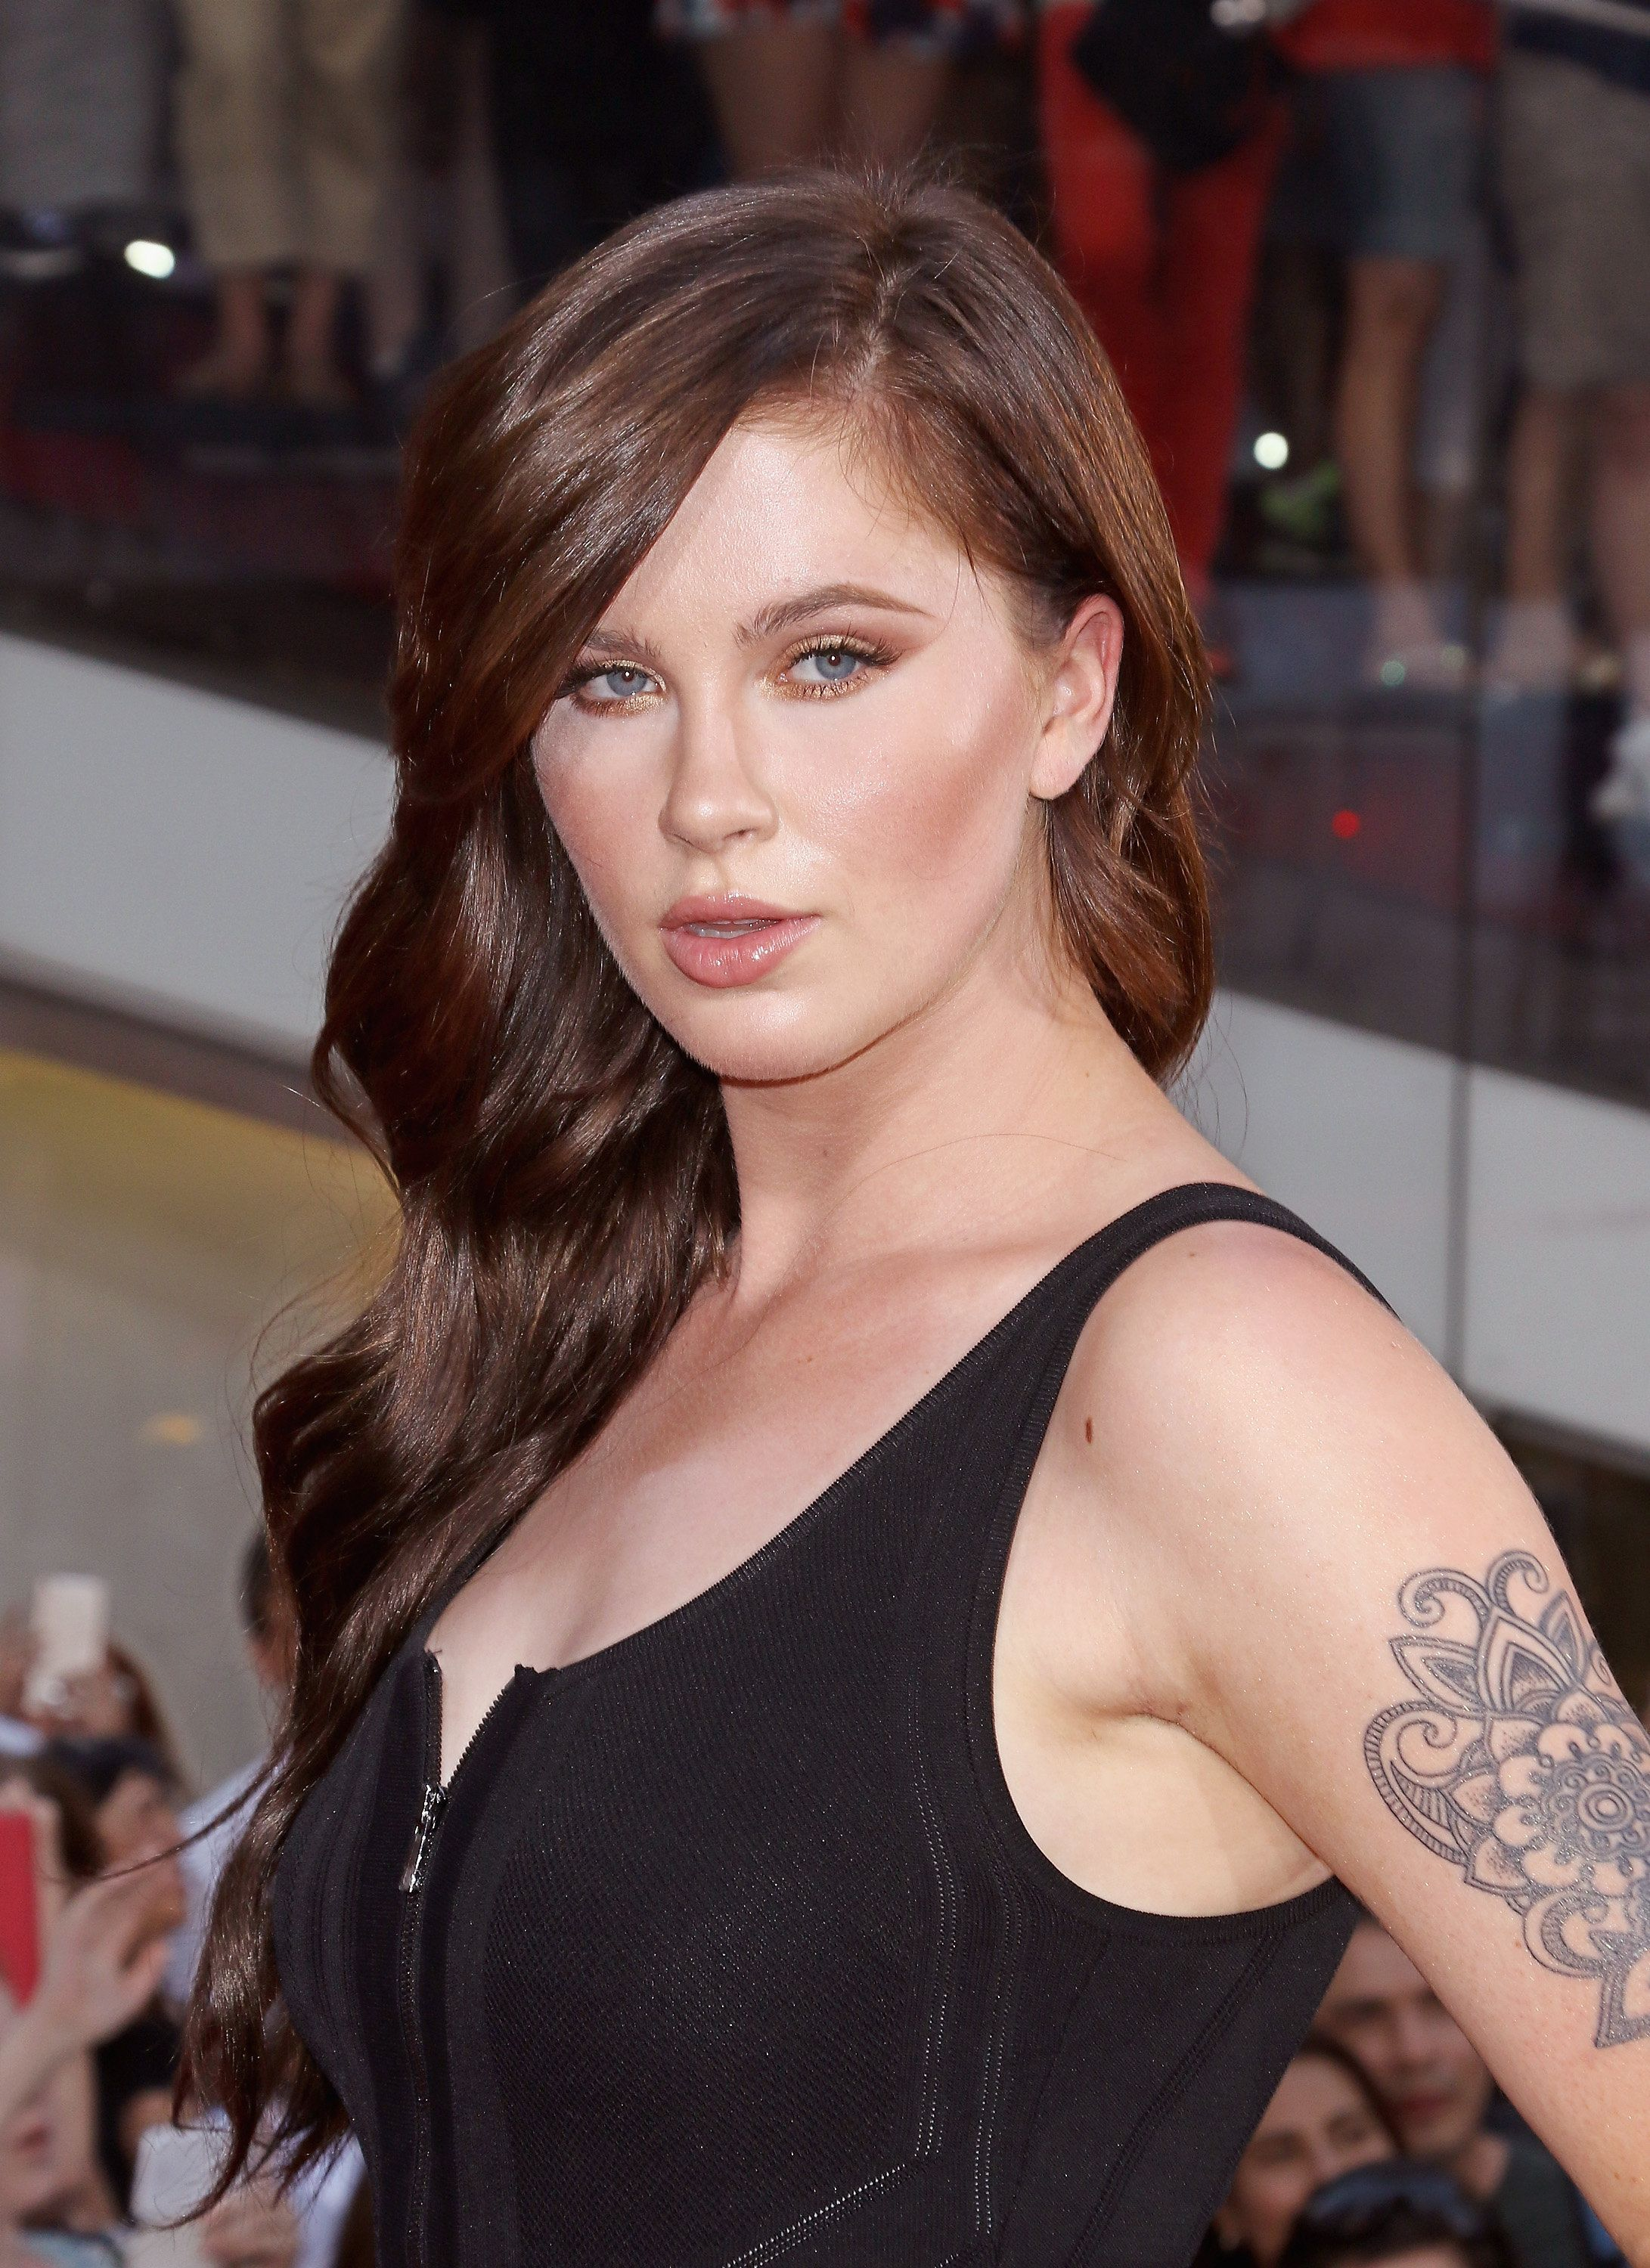 NEW YORK, NY - JULY 27:  Ireland Baldwin attends the 'Mission Impossible: Rogue Nation' New York premiere at Times Square on July 27, 2015 in New York City.  (Photo by Jim Spellman/WireImage)